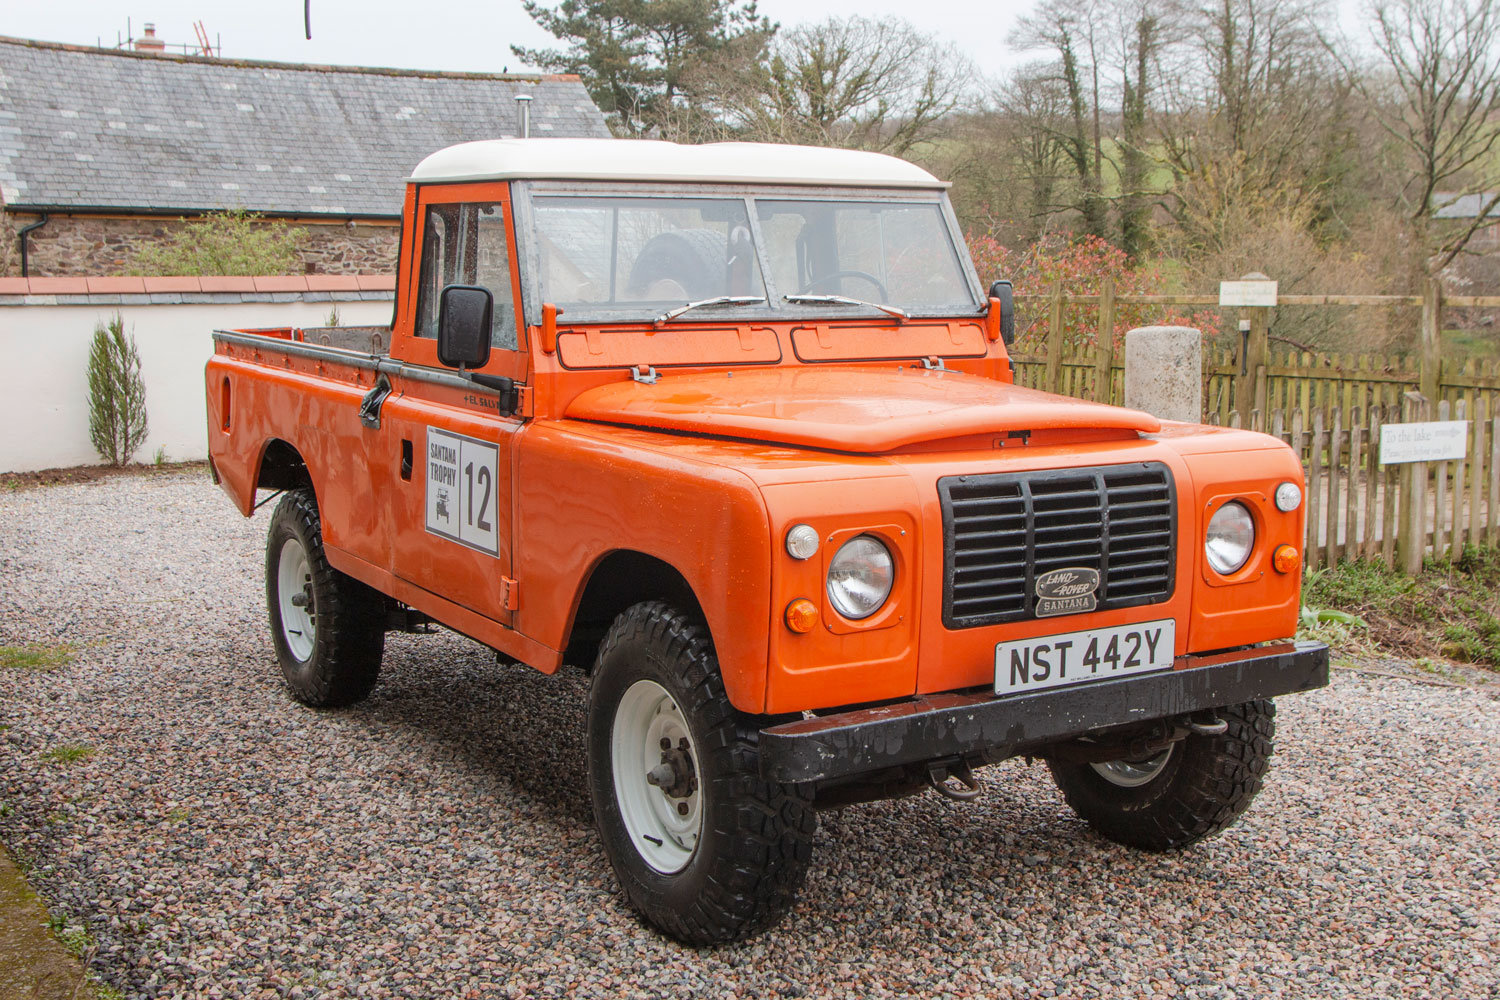 1982 Land Rover Santana 109 6 Cyl Diesel LHD For Sale (picture 1 of 6)